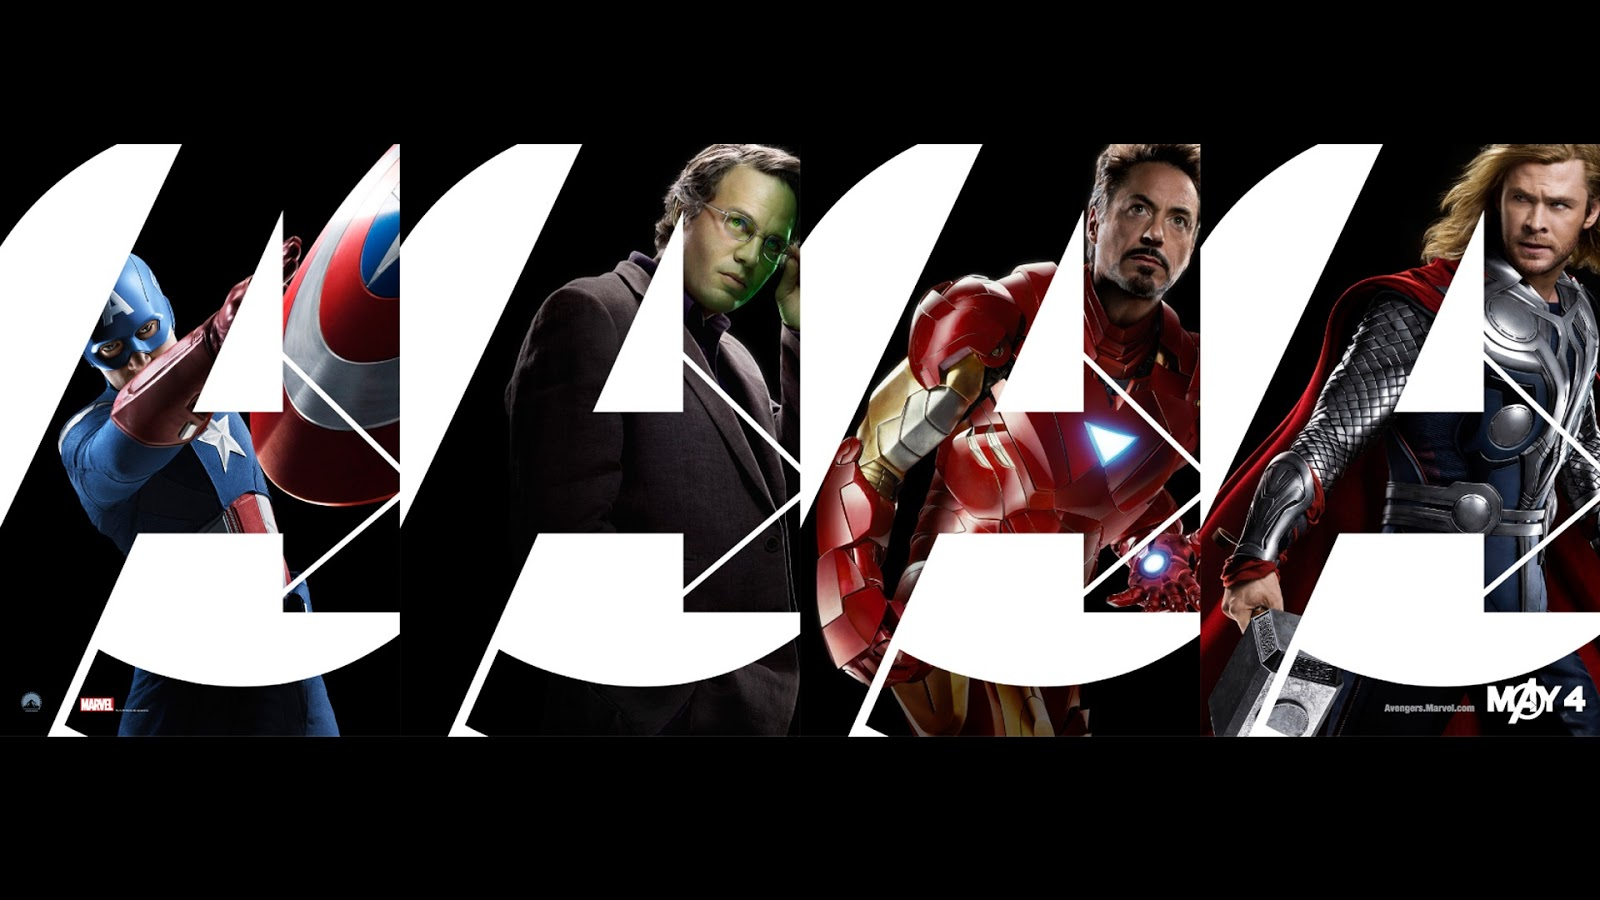 Super Heroes in Avengers Wallpaper HD